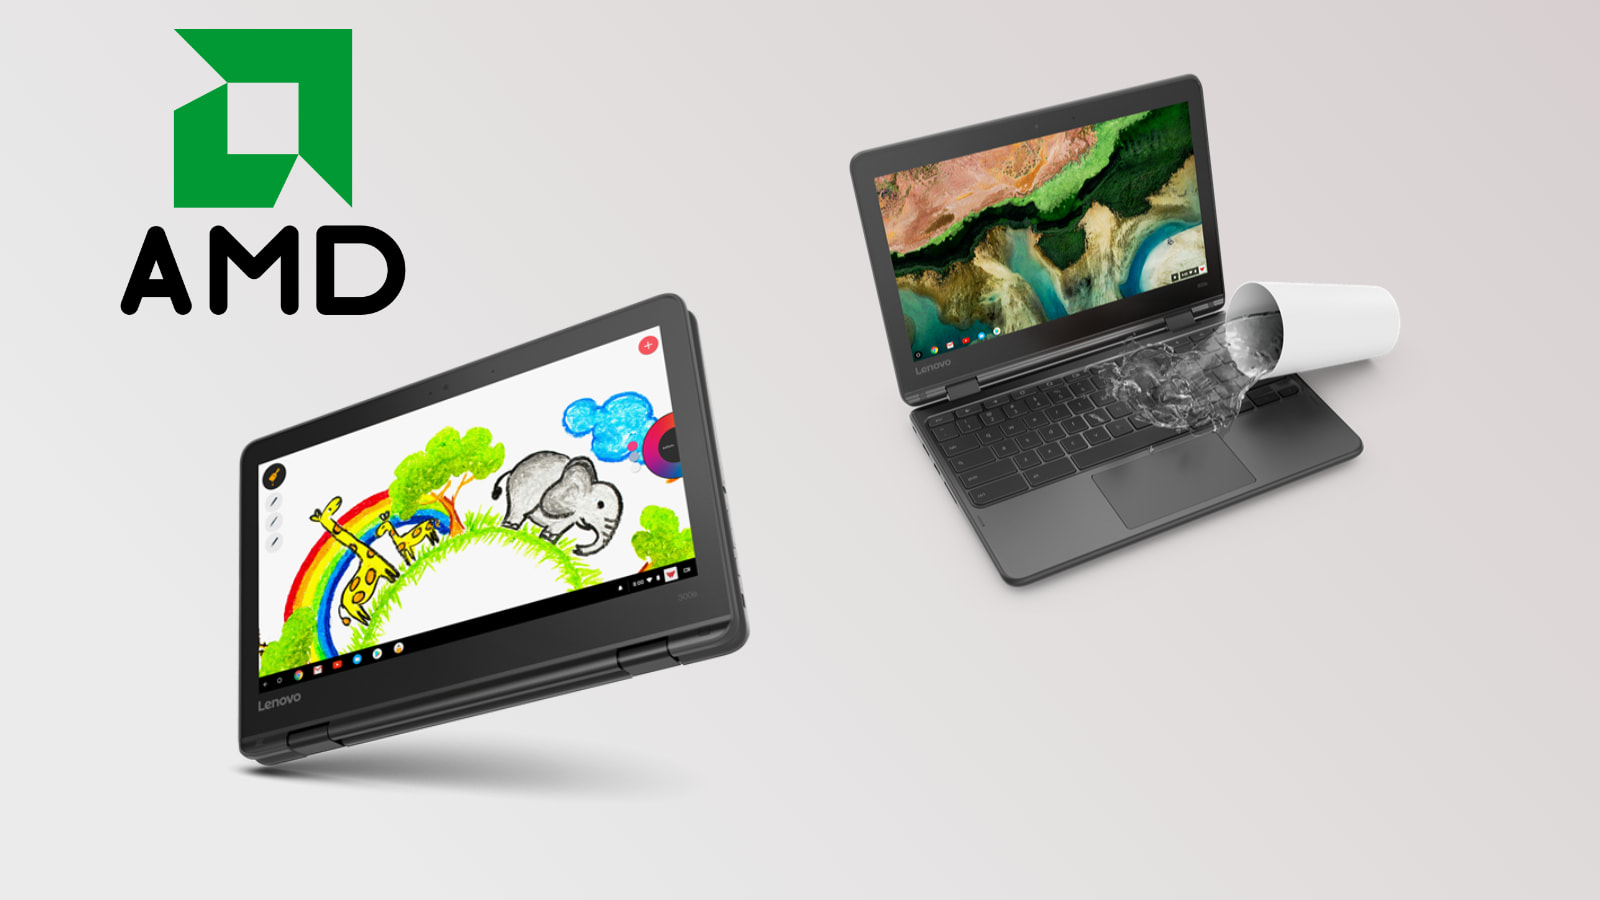 Lenovo brings AMD to its rugged Chromebook lineup